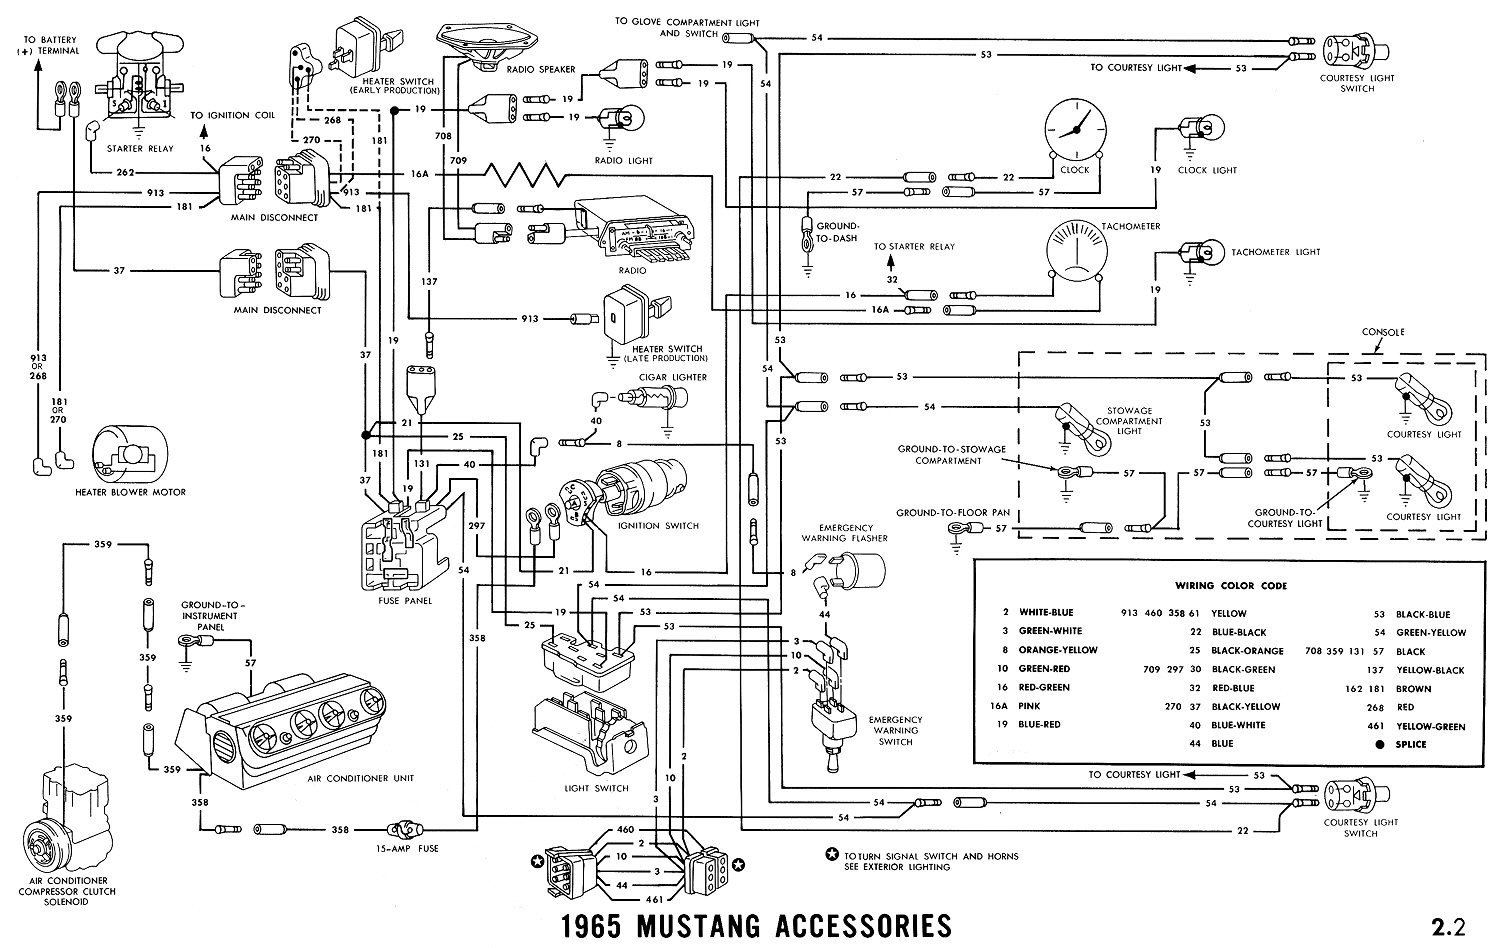 1965 Mustang Wiring Diagrams - Average Joe RestorationAverage Joe Restoration